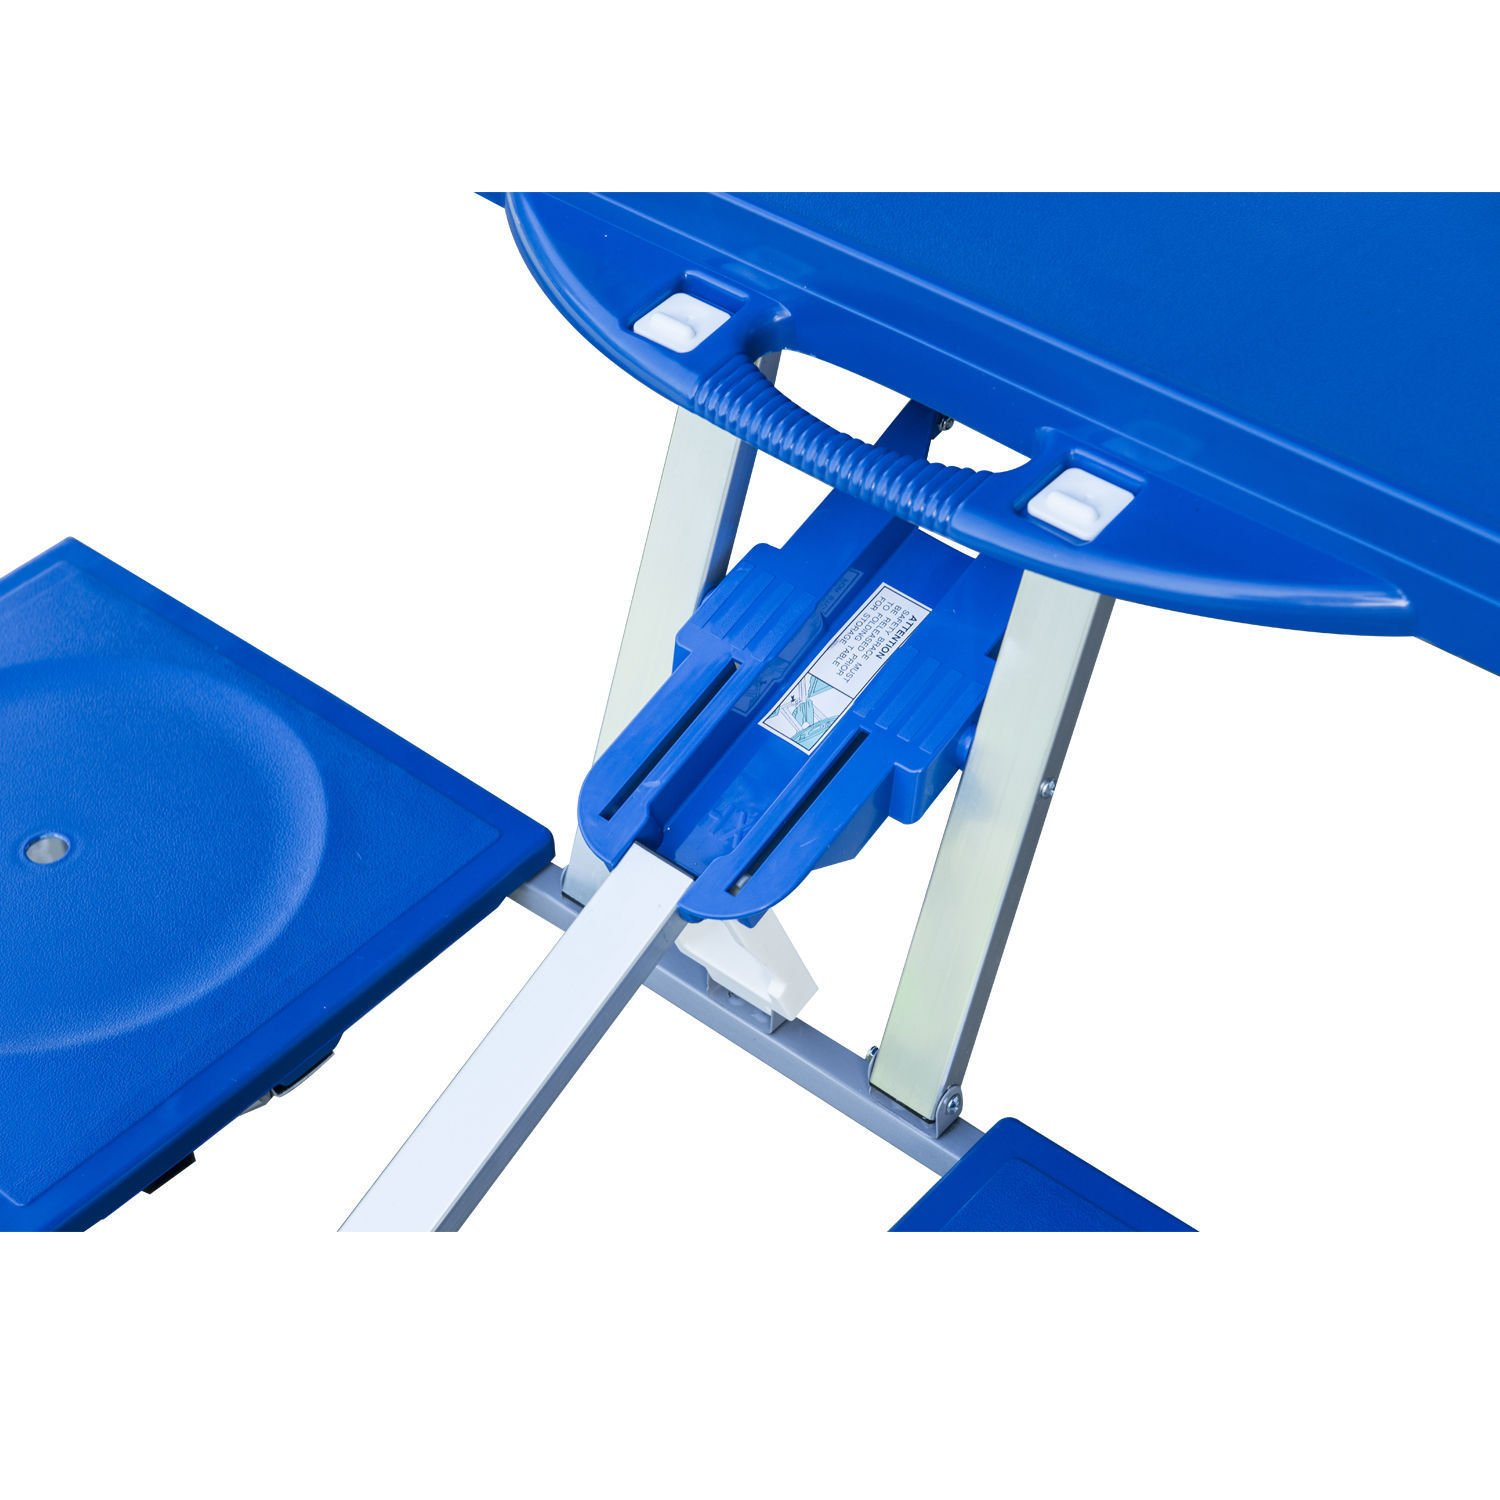 Ar Portable Folding Plastic Camping Picnic Table 4 Seats Outdoor Garden W/Case Blue by Ar (Image #8)